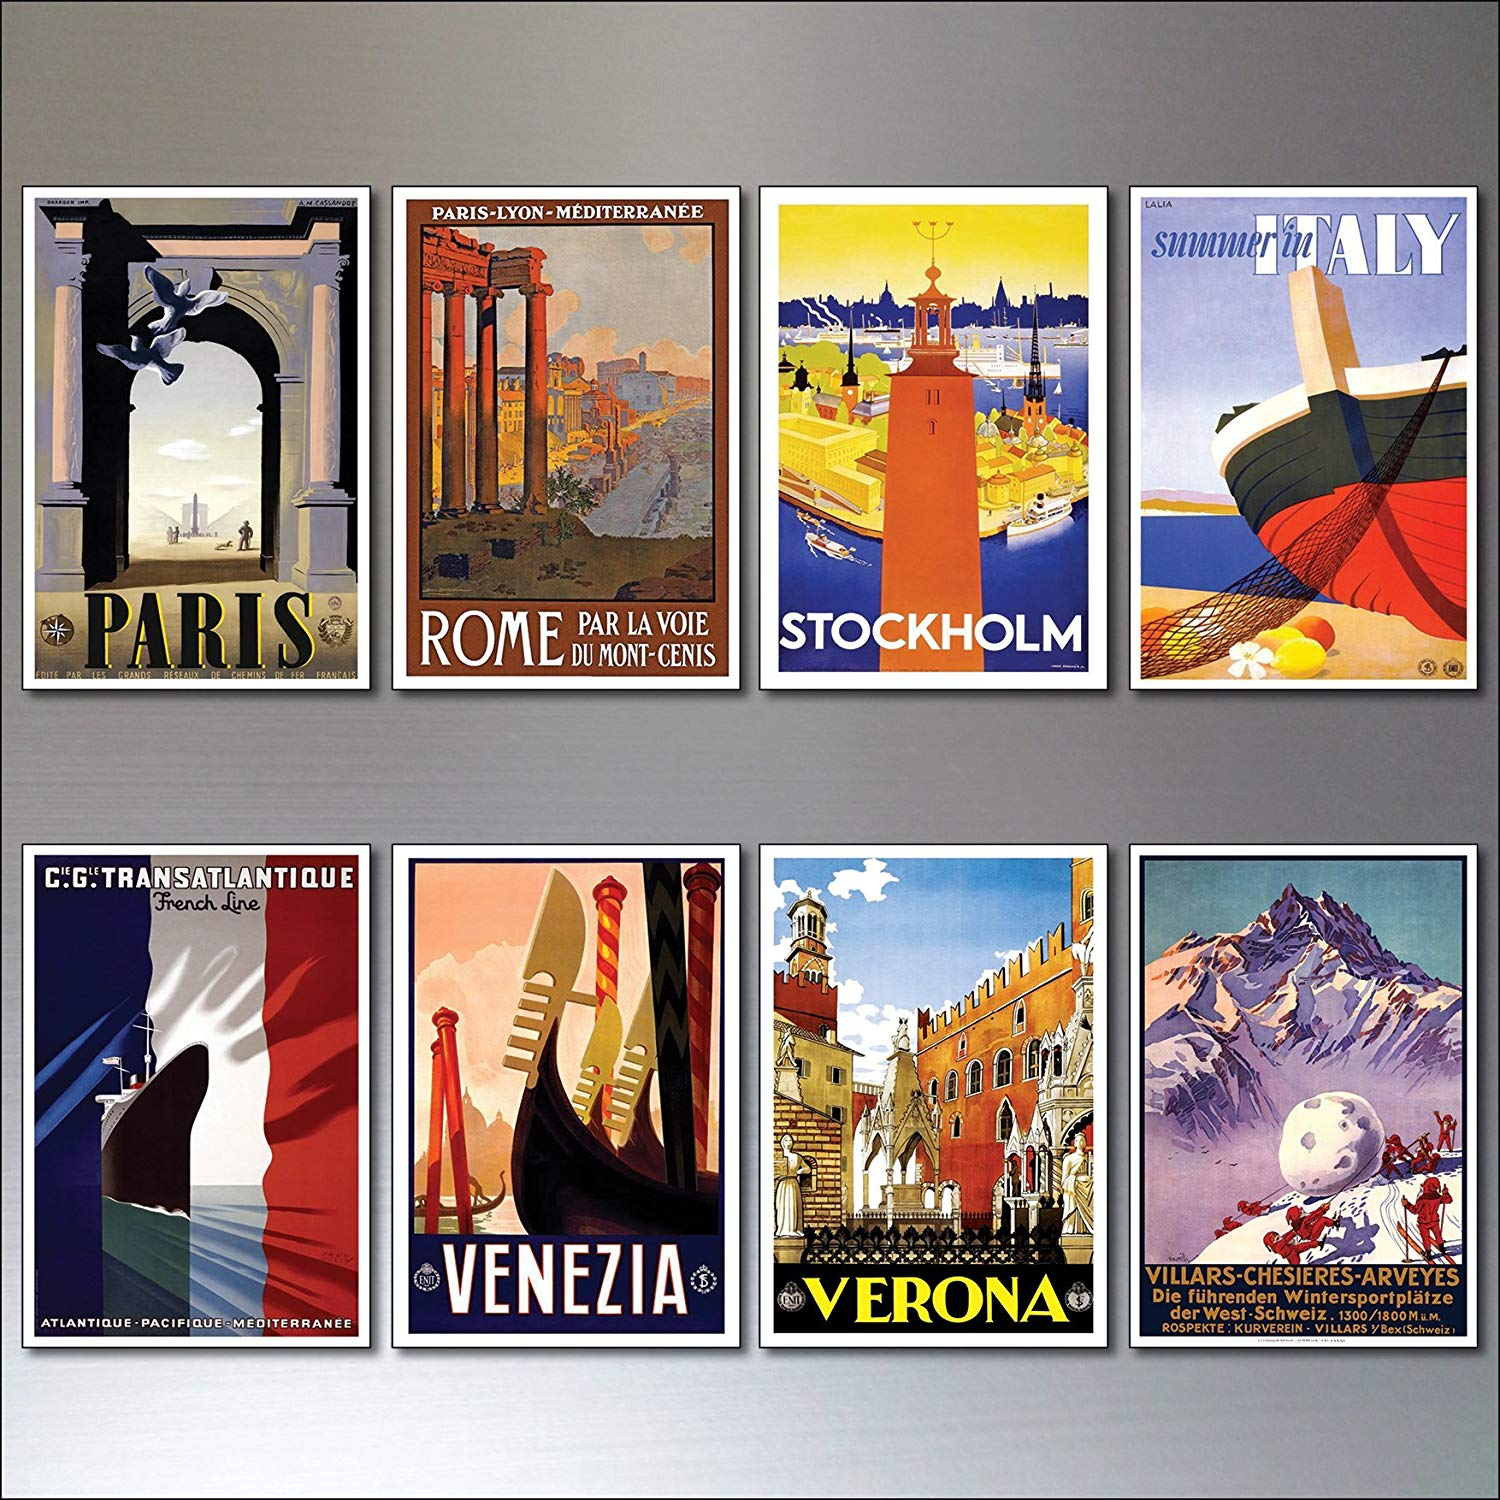 8 Vintage Travel Posters Fridge Magnets From Art Deco Period Retro Repro No 4 In Price On M Alibaba